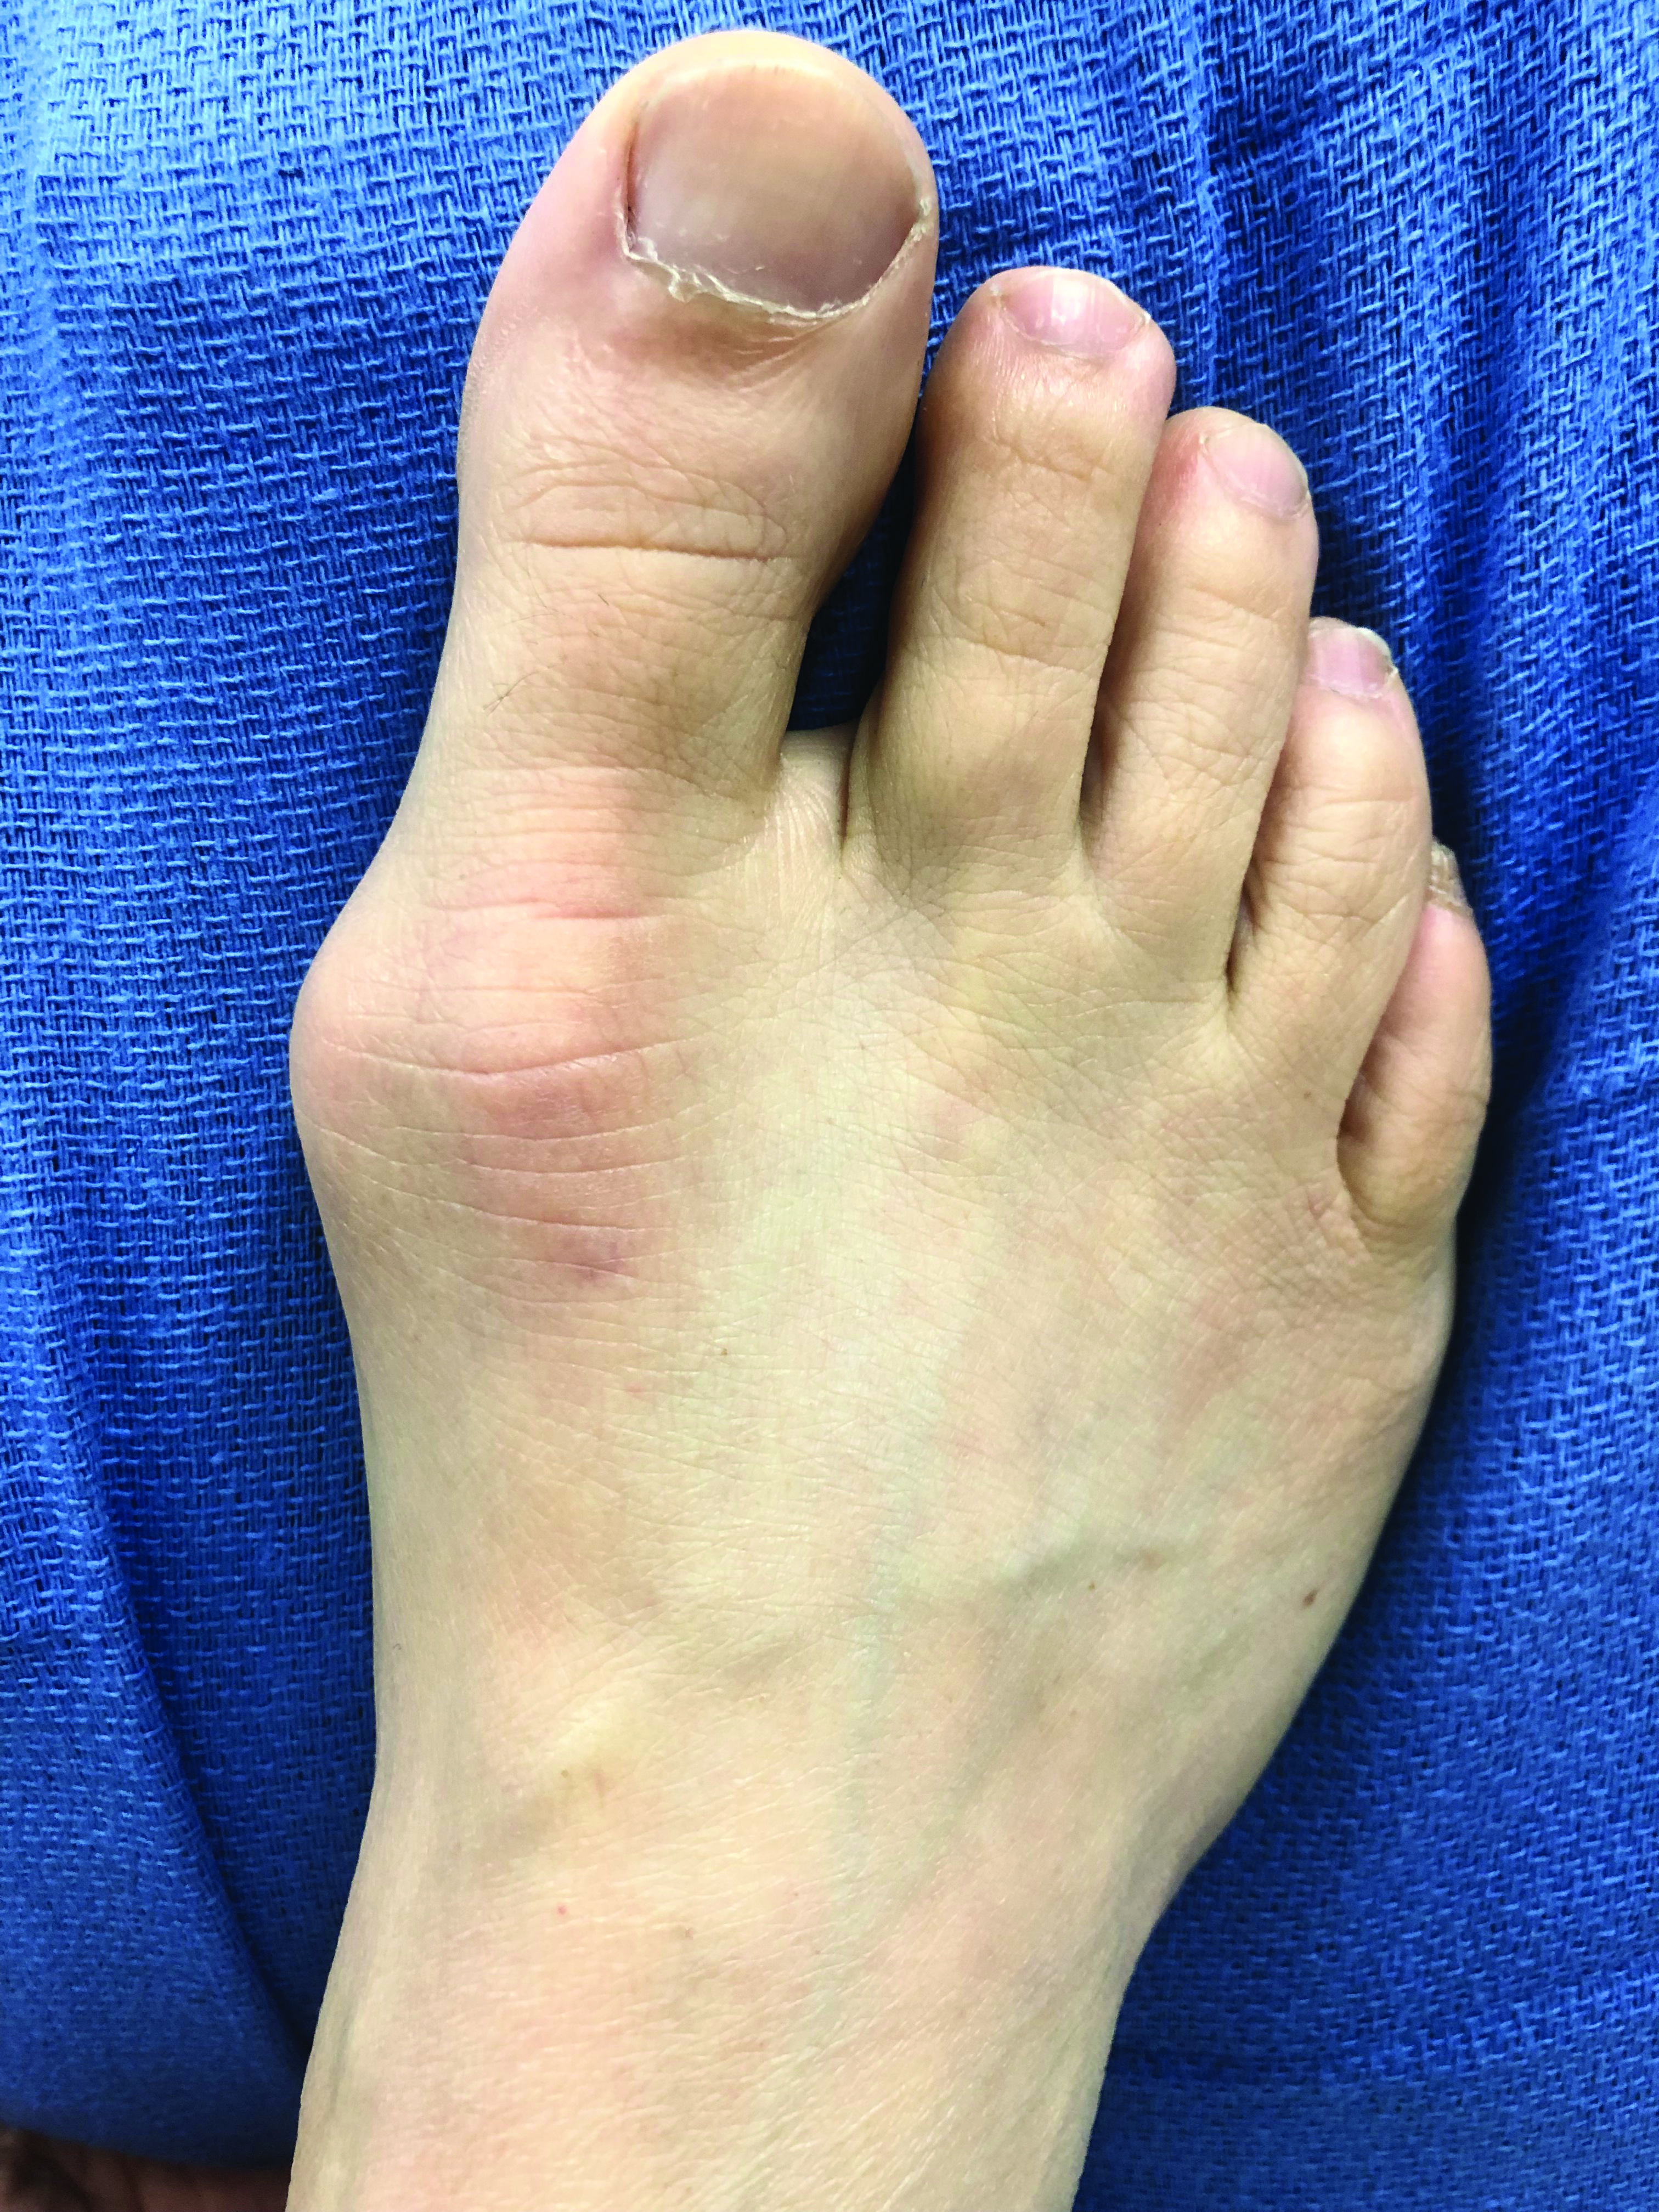 This photo illustrates a patient's foot prior to undergoing minimally invasive bunion surgery.